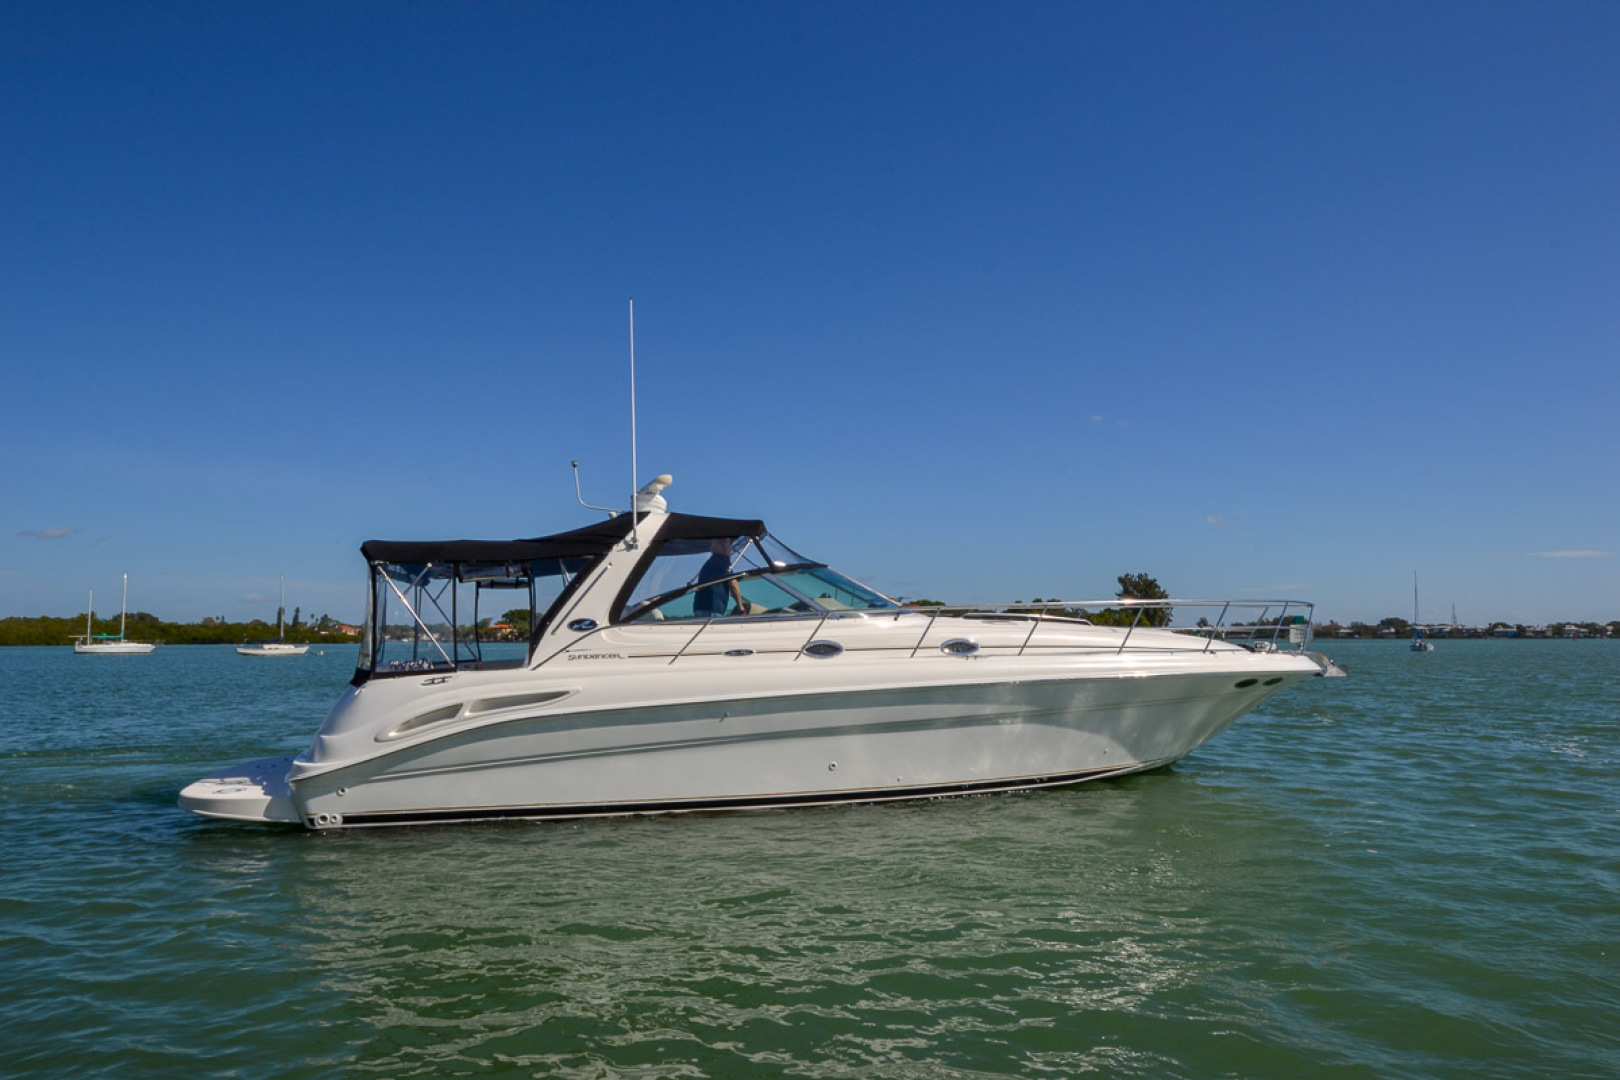 2000 Sea Ray 410 Sundancer-10.jpg